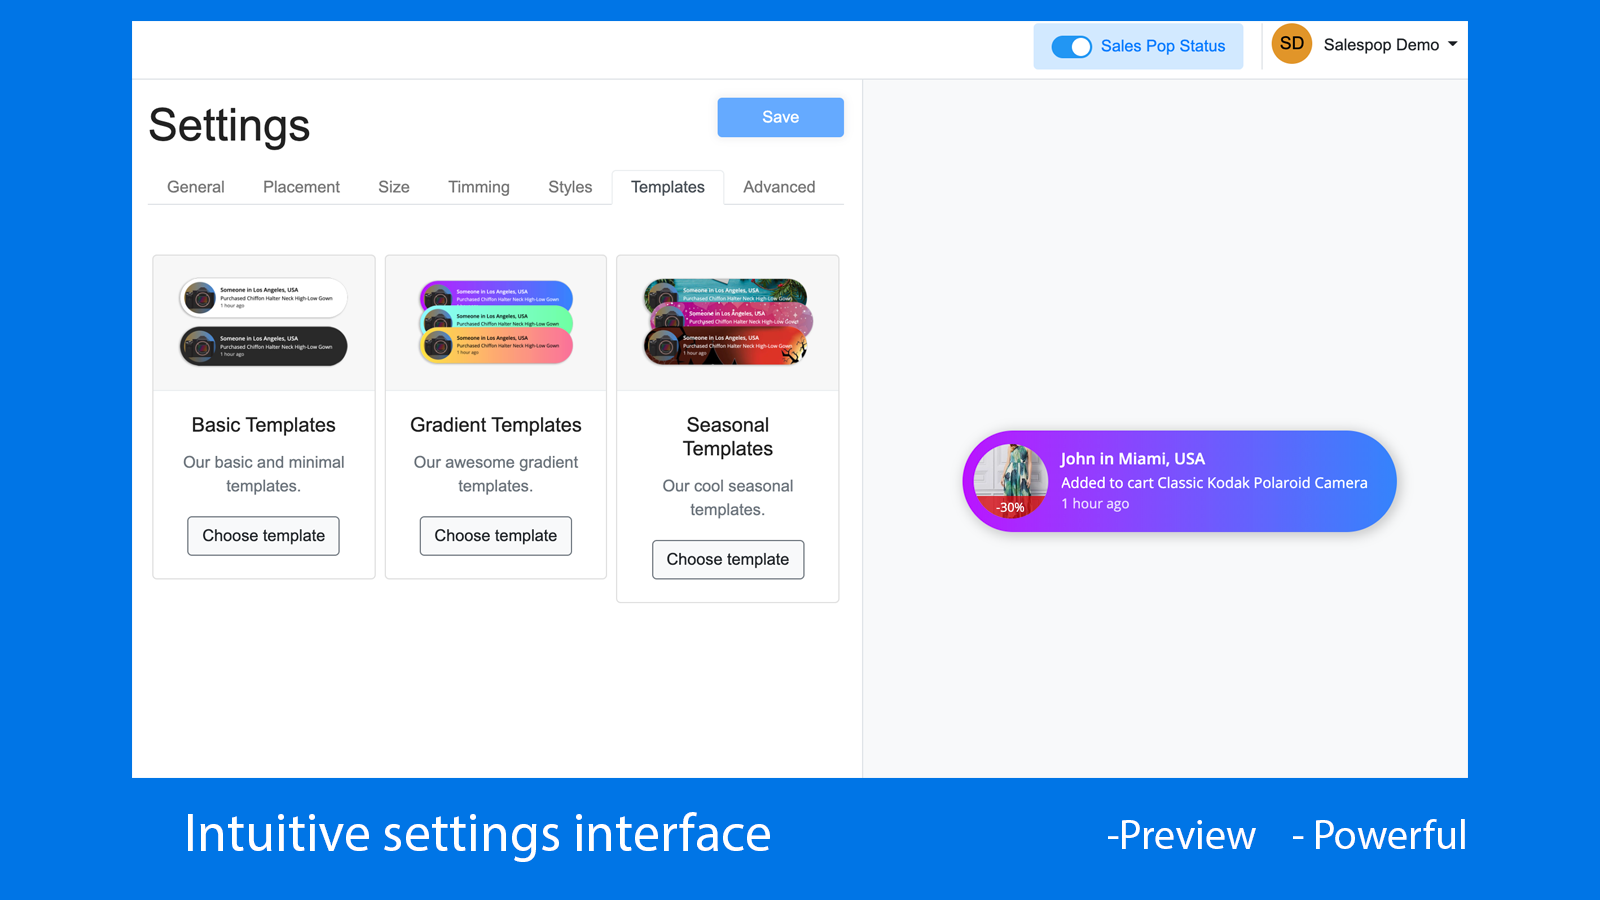 Intuitive settings interface